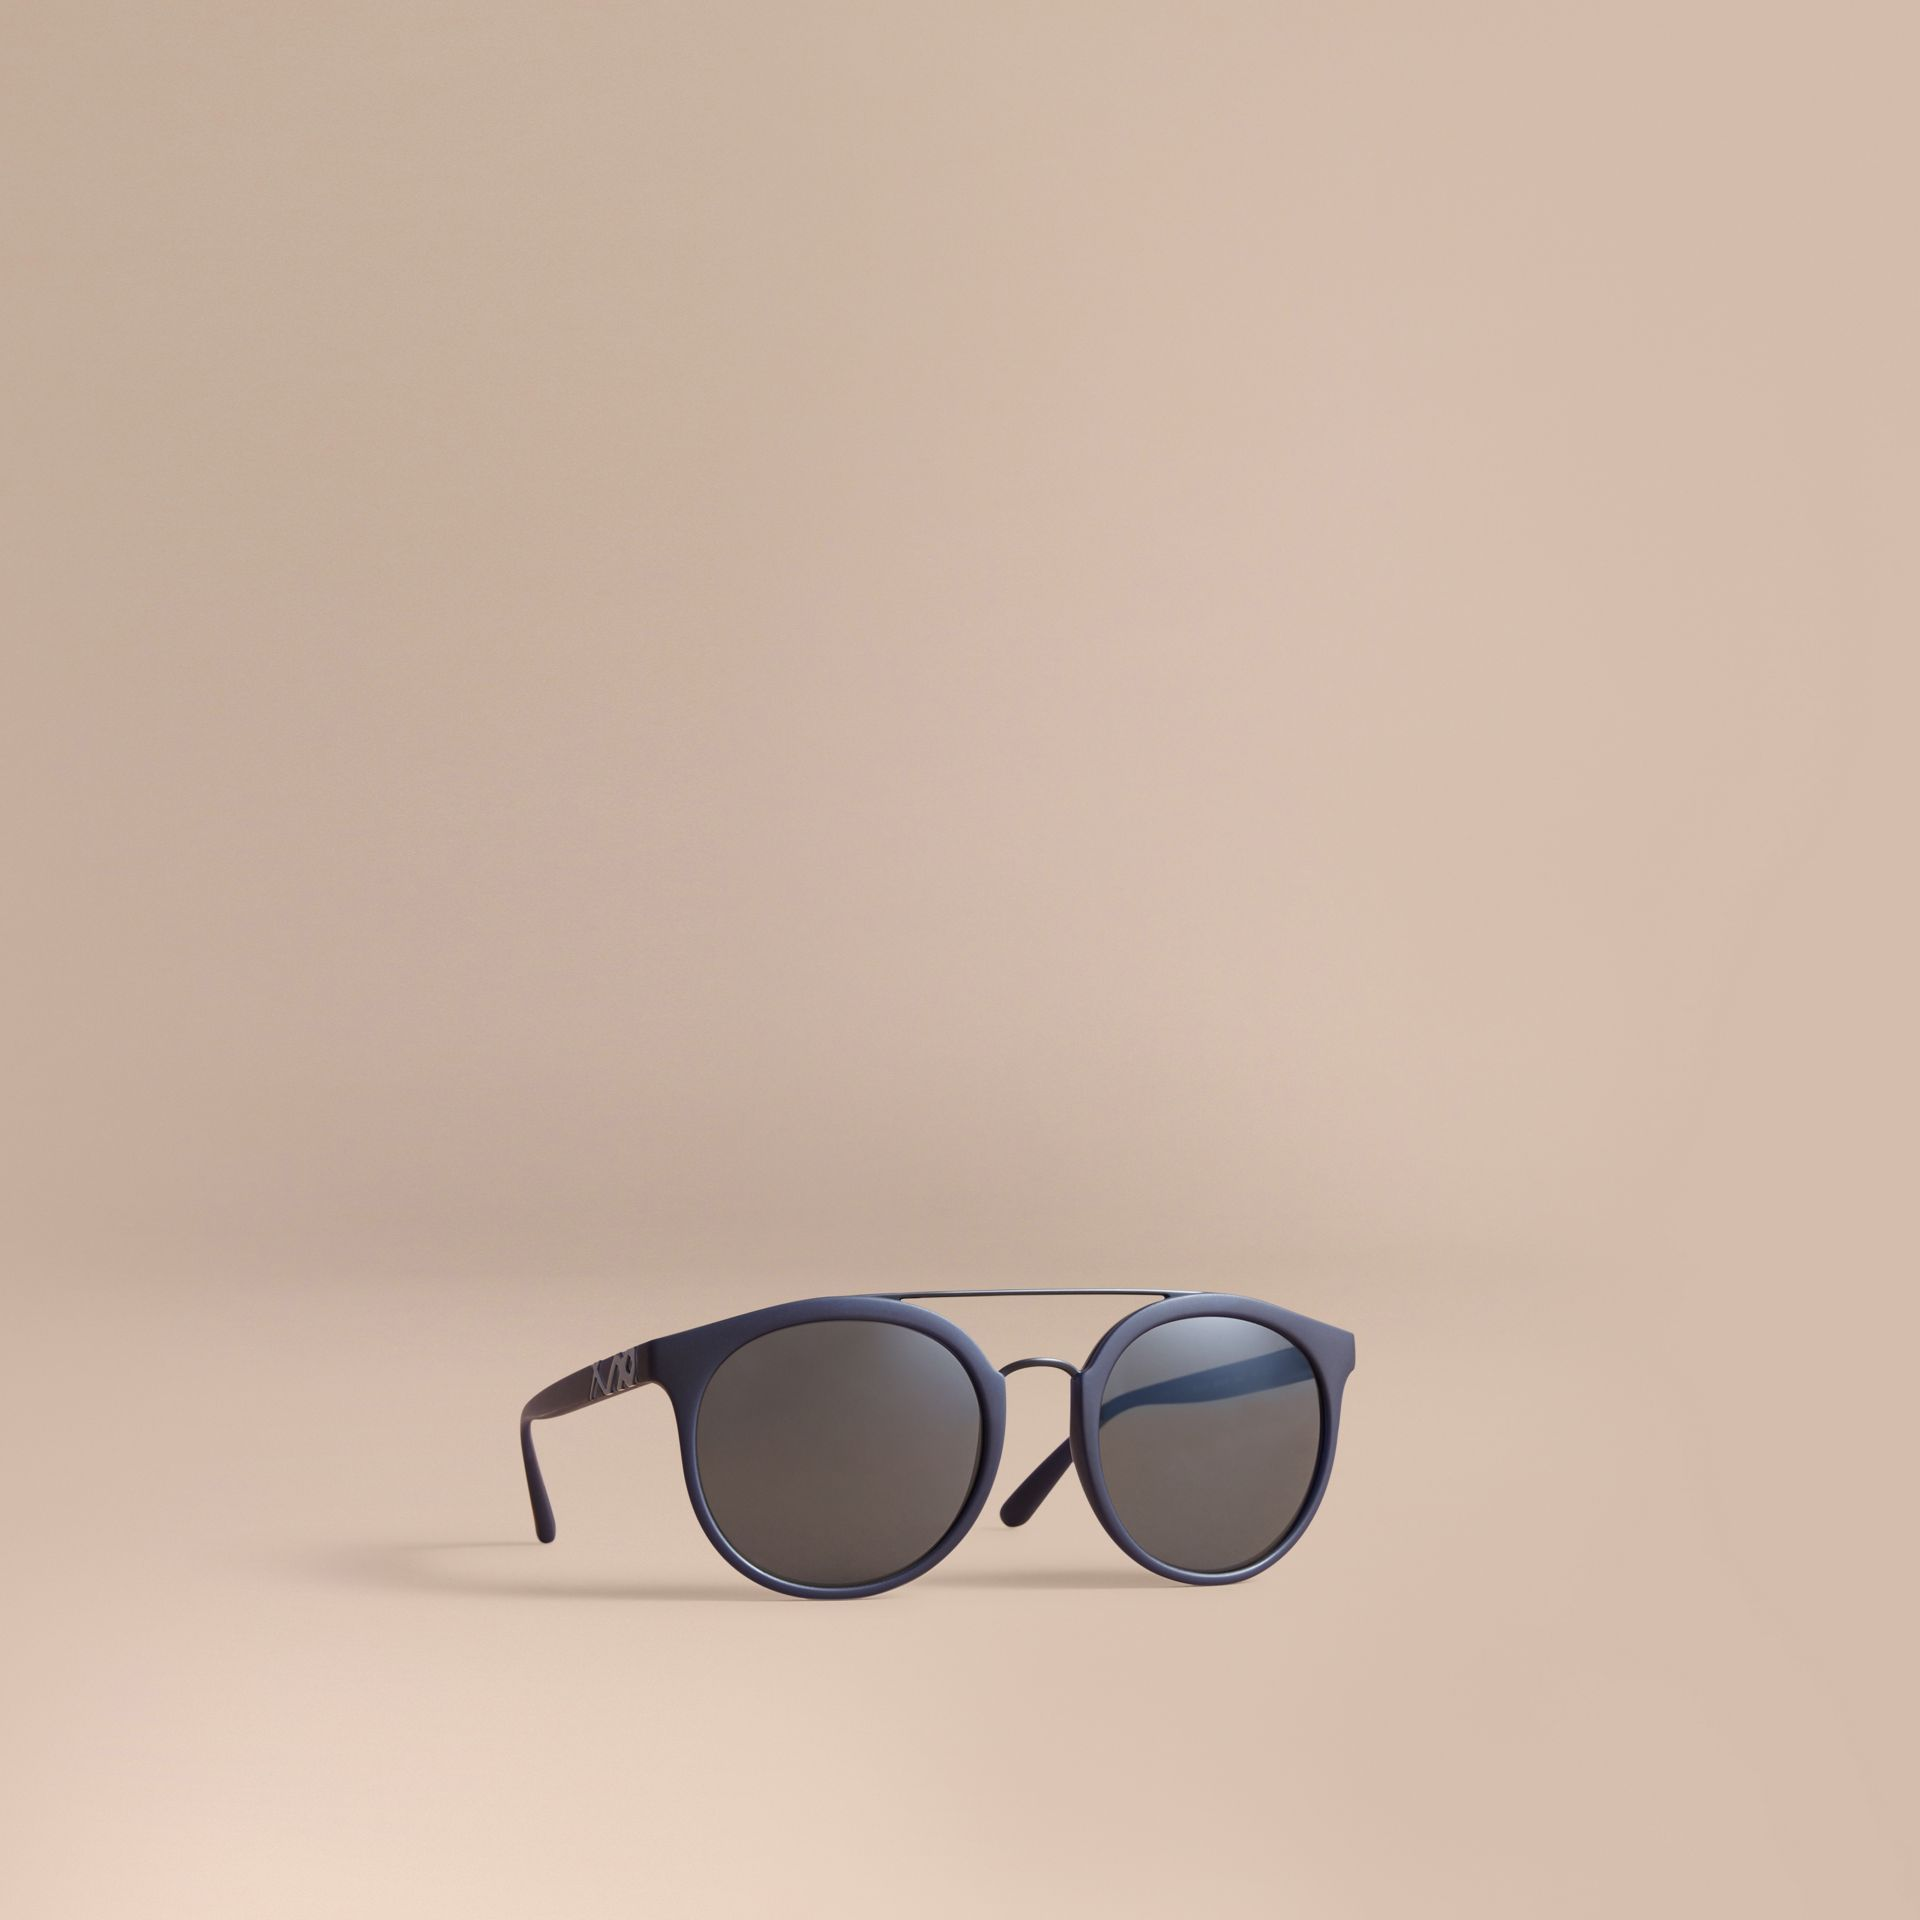 Top Bar Square Frame Sunglasses in Navy - Men | Burberry - gallery image 0